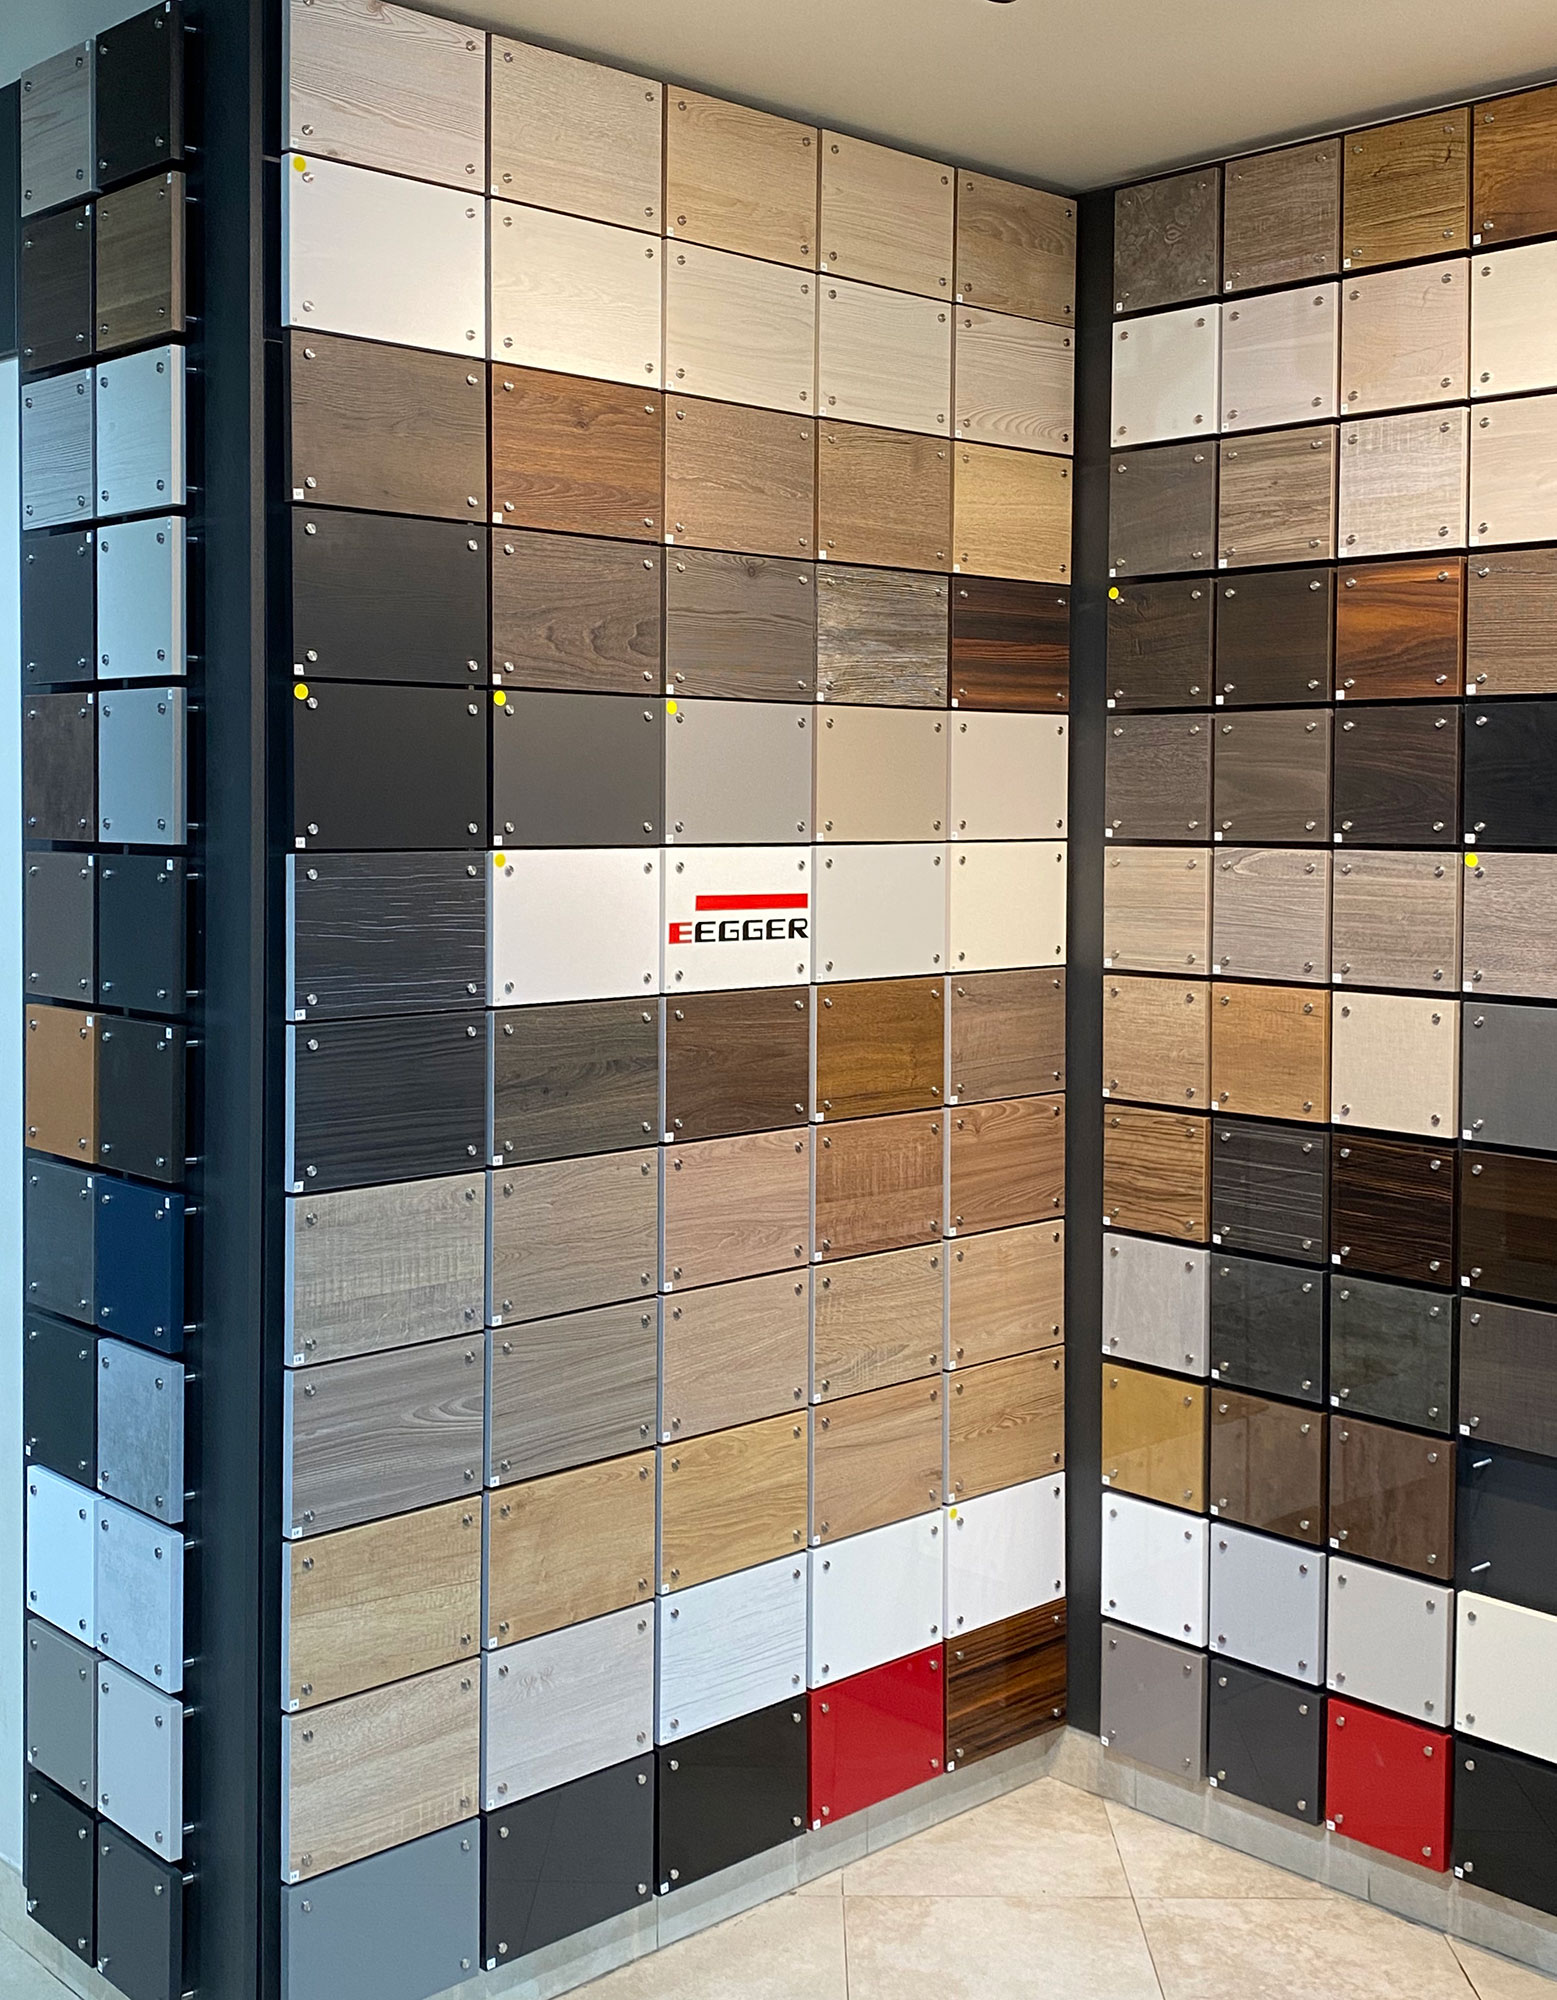 All melamine colors available